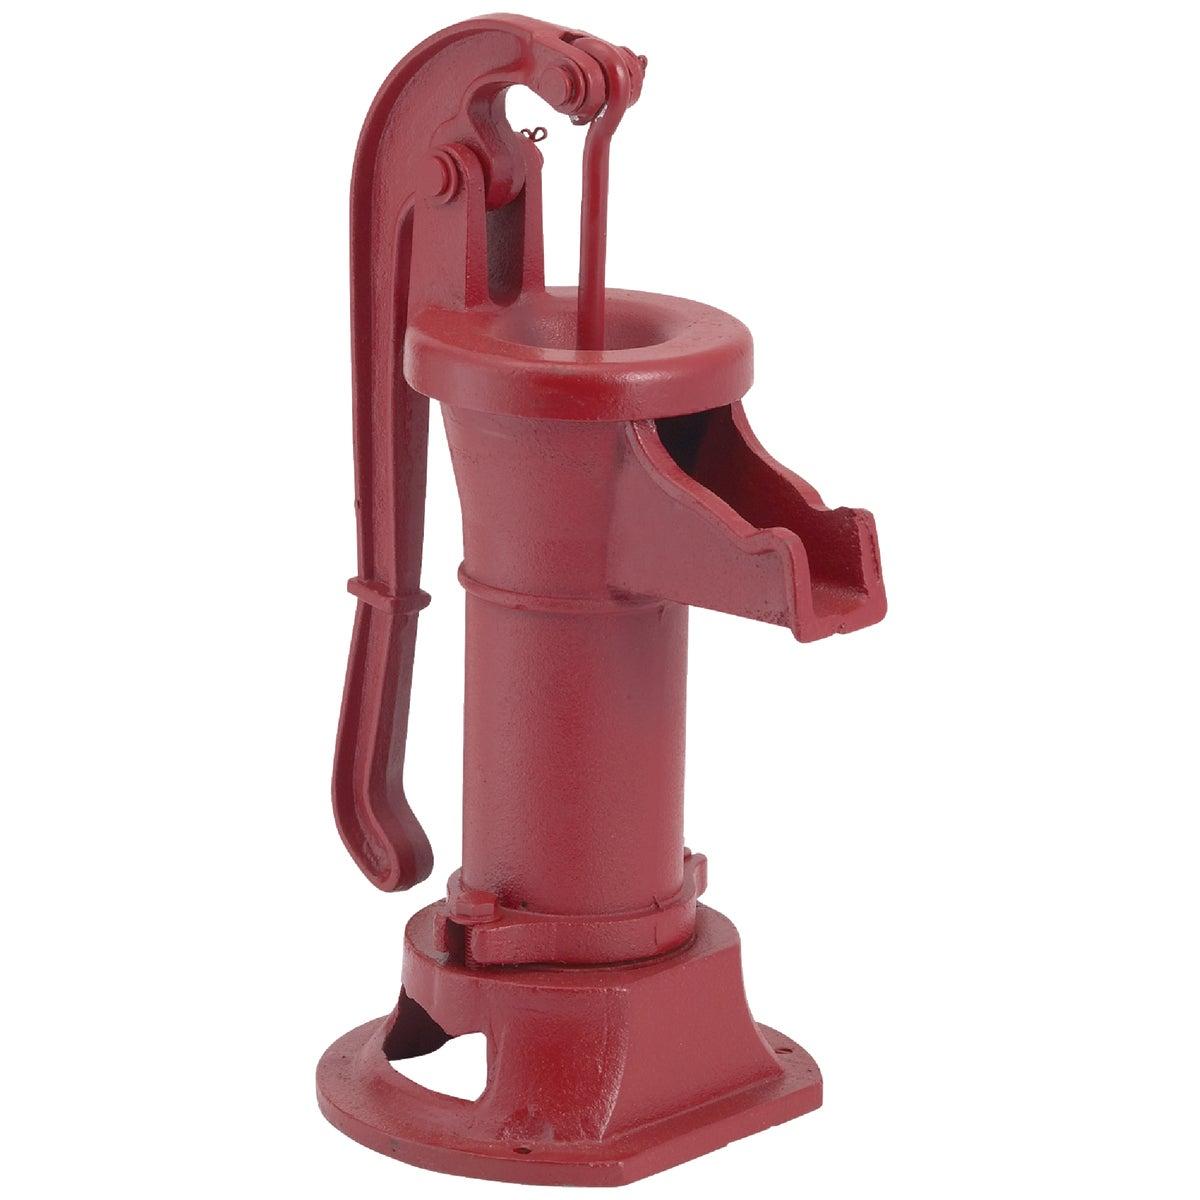 PITCHER SPOUT PUMP - 1160 by Simmons Mfg Co